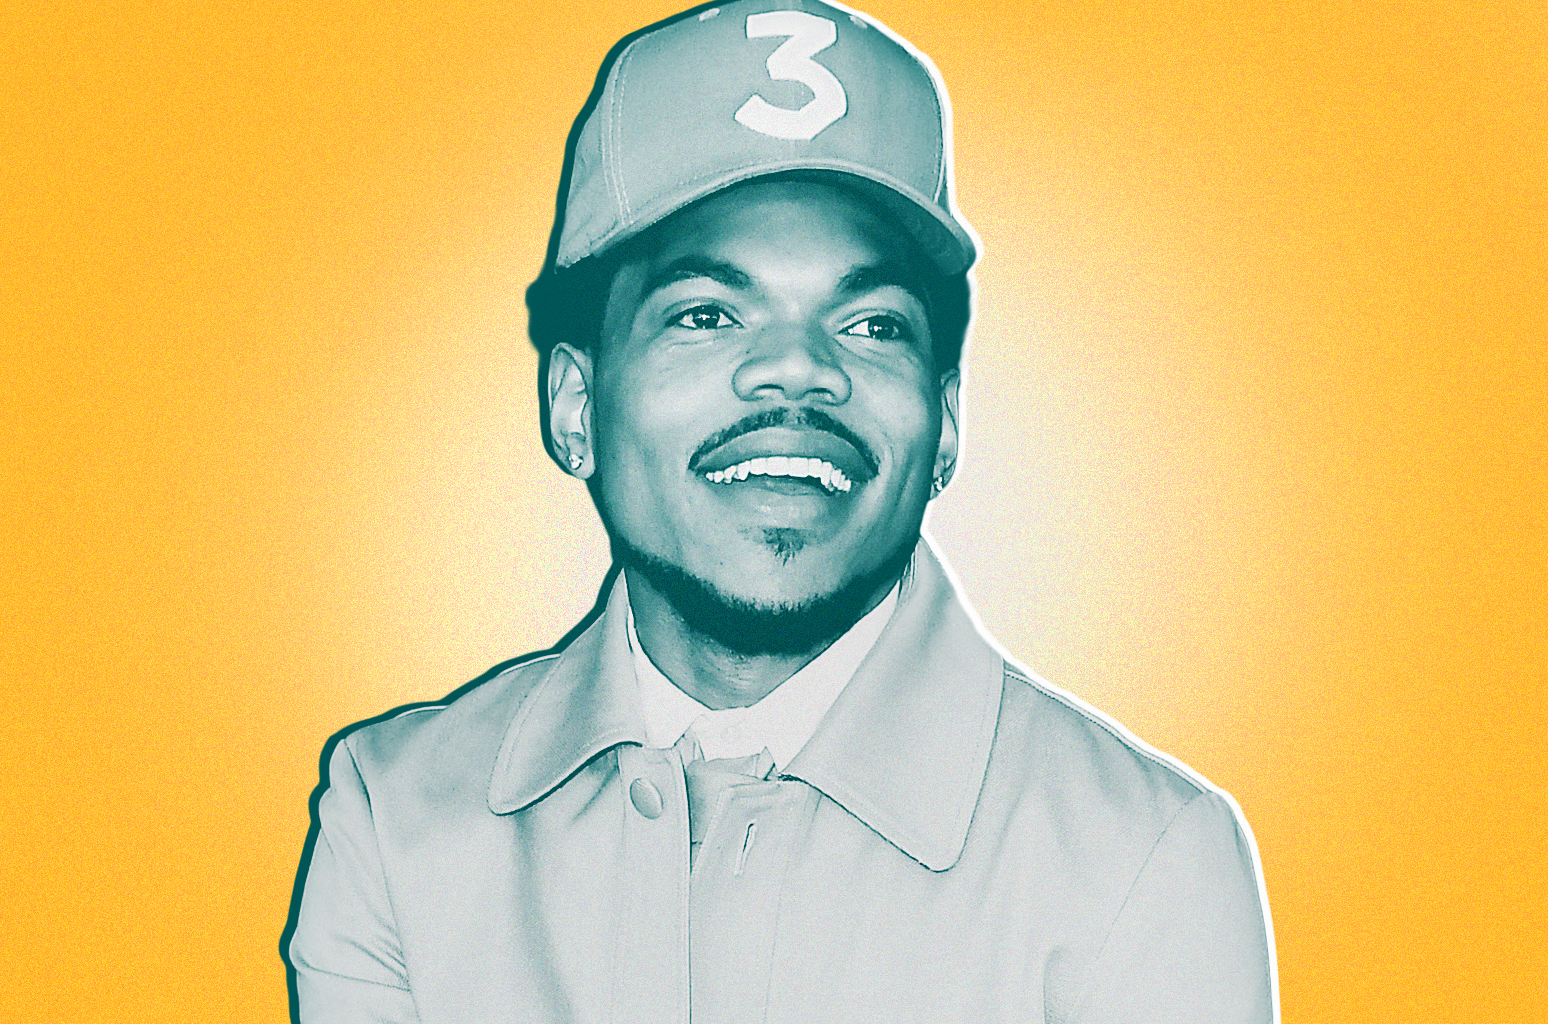 This is Chance the Rapper. He gave 1 million dollars to Chicago Public Schools, fights gun violence in his city, and is a genius.     Read more about him here.